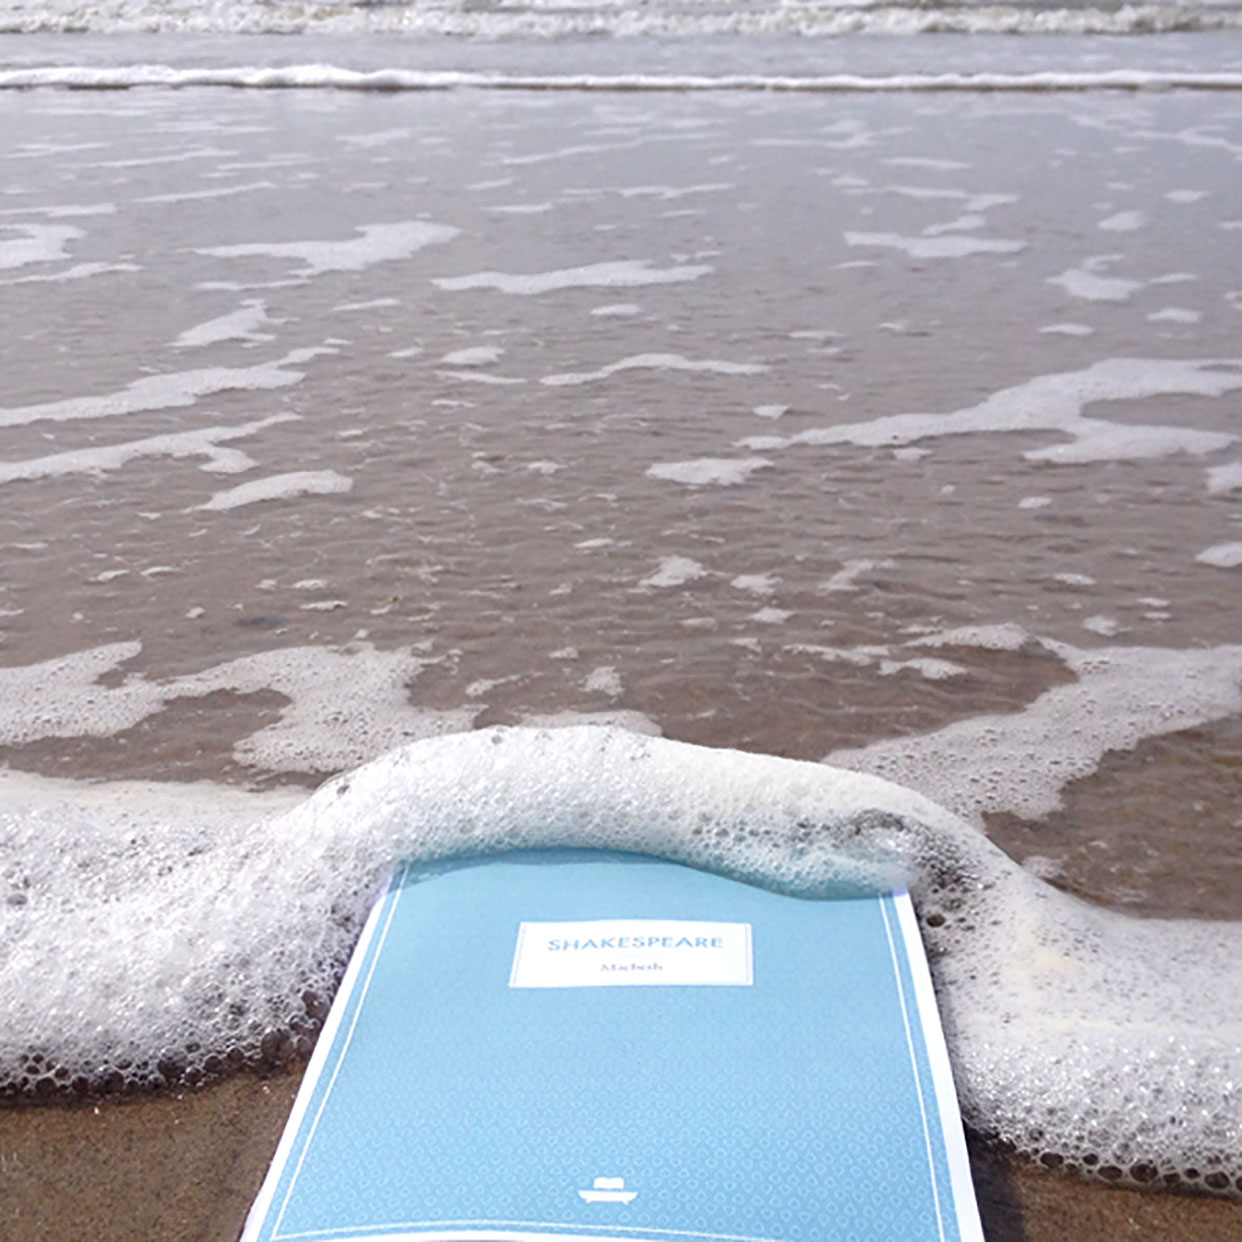 A blue book on the beach, with water coming up over the book